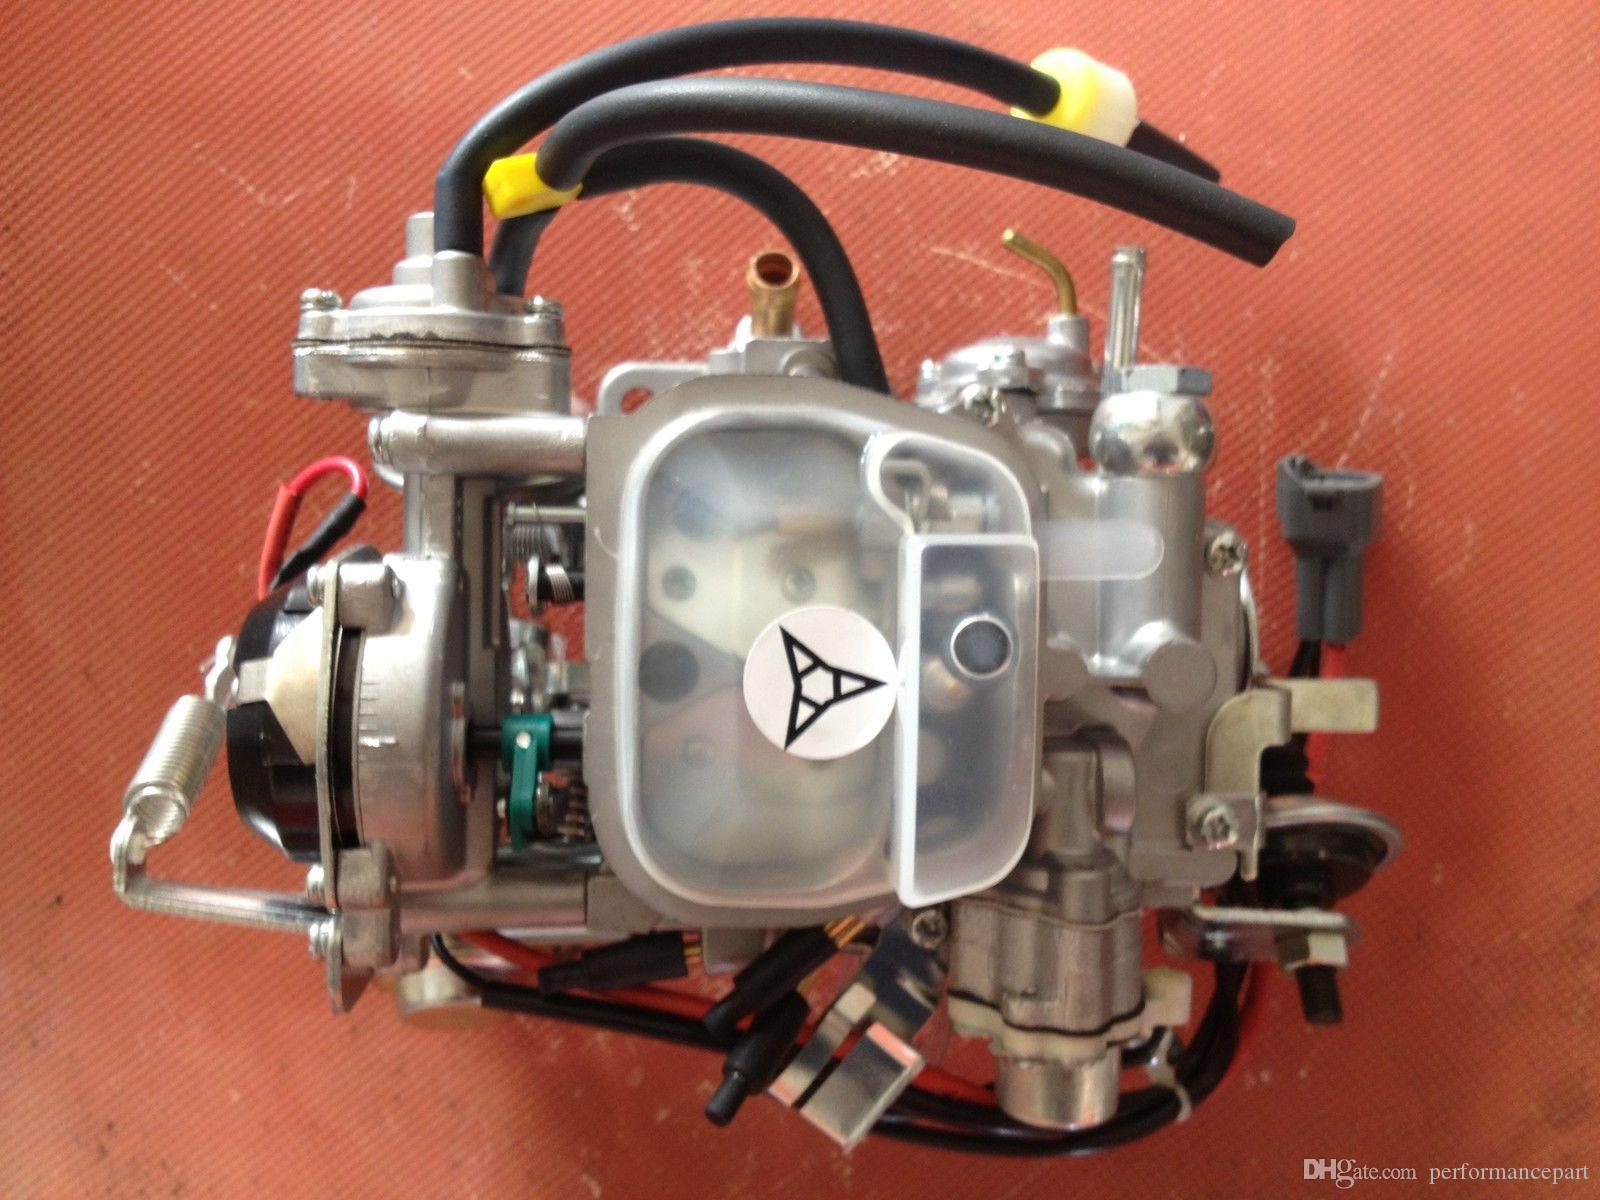 hight resolution of 2019 carb new replace carburetor 22r toyota engine corona 21100 35520 22r toyota from performancepart 123 61 dhgate com